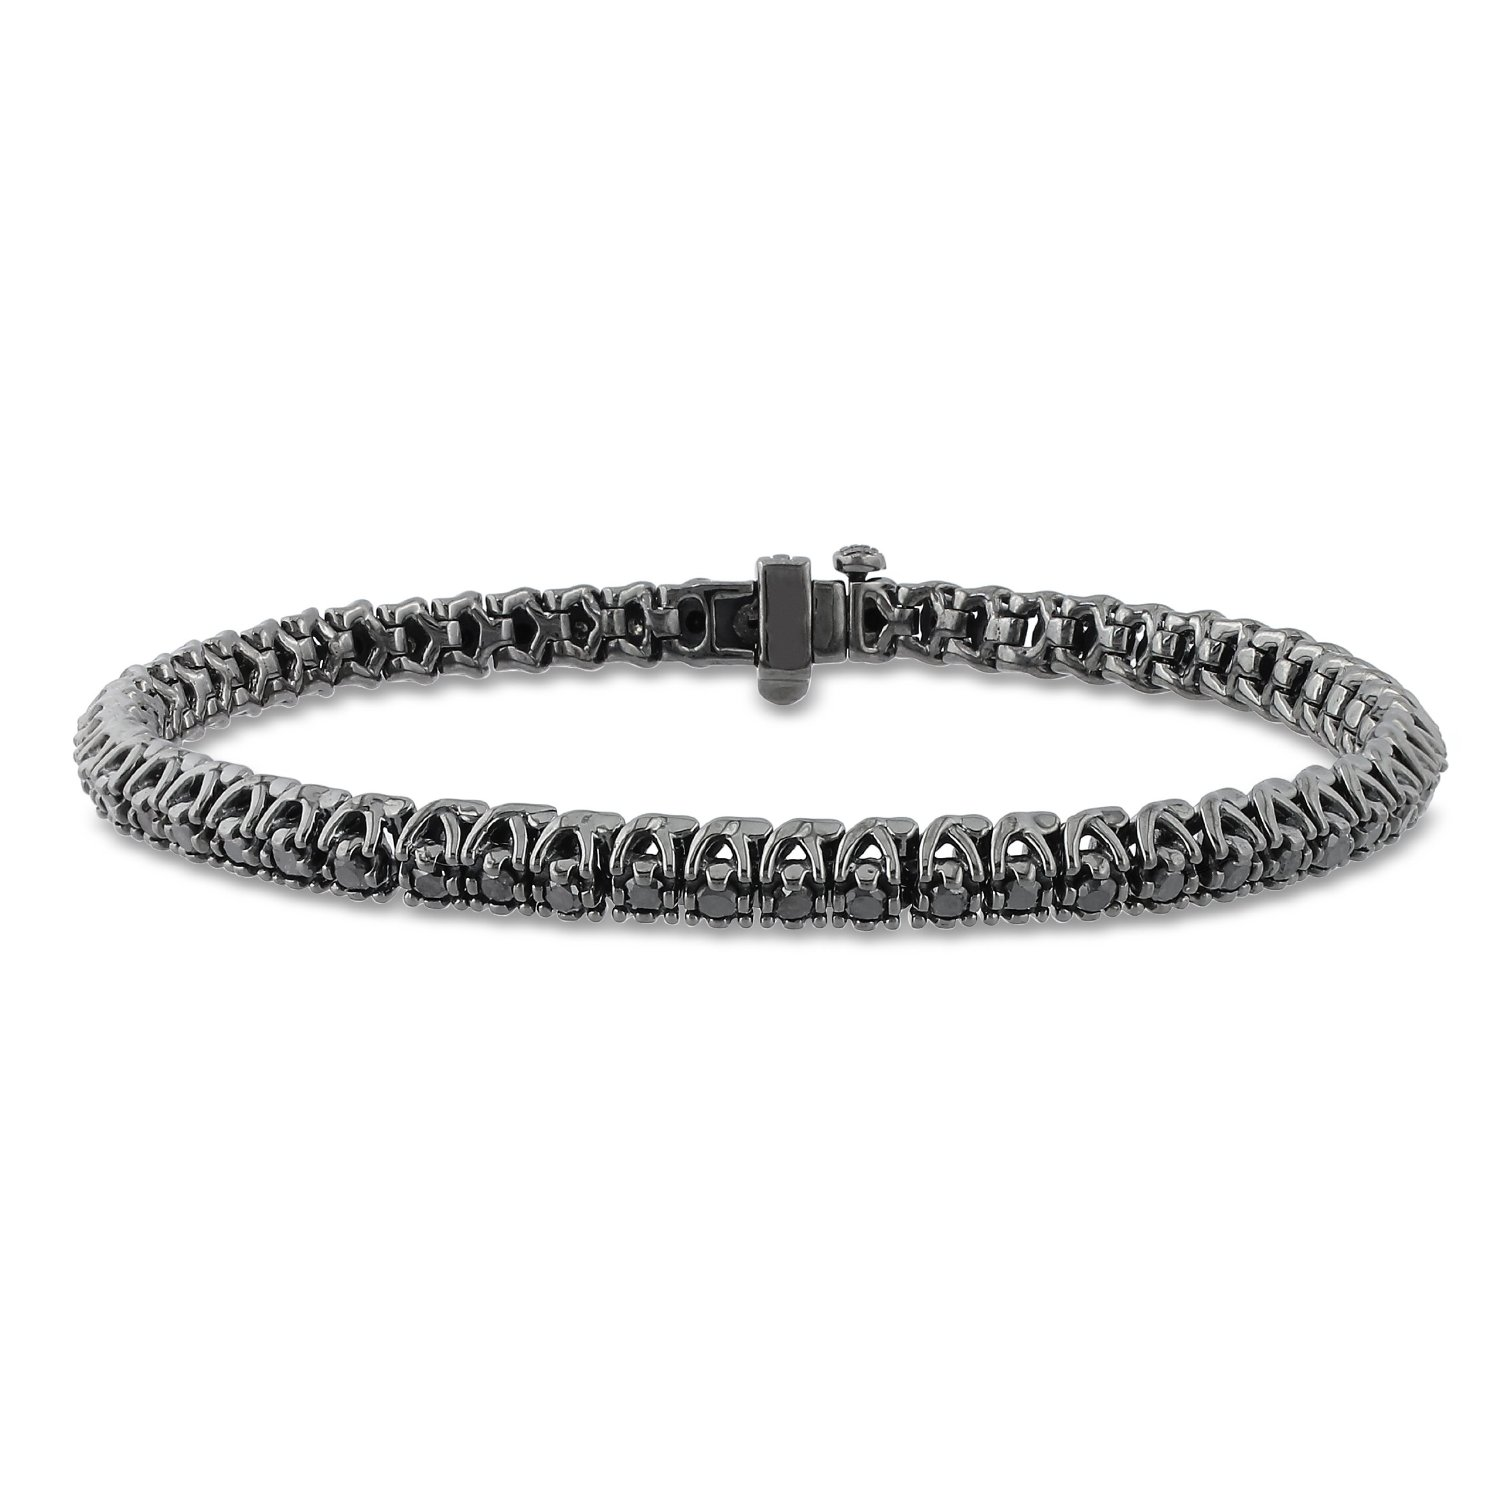 Black Diamond 6 50 Carat Jet Black Diamond Tennis Bracelet Direct From Wholesaler Huge Tennis Diamonds Men S Bracelet 14k White Gold13 43 Carat Men S Black